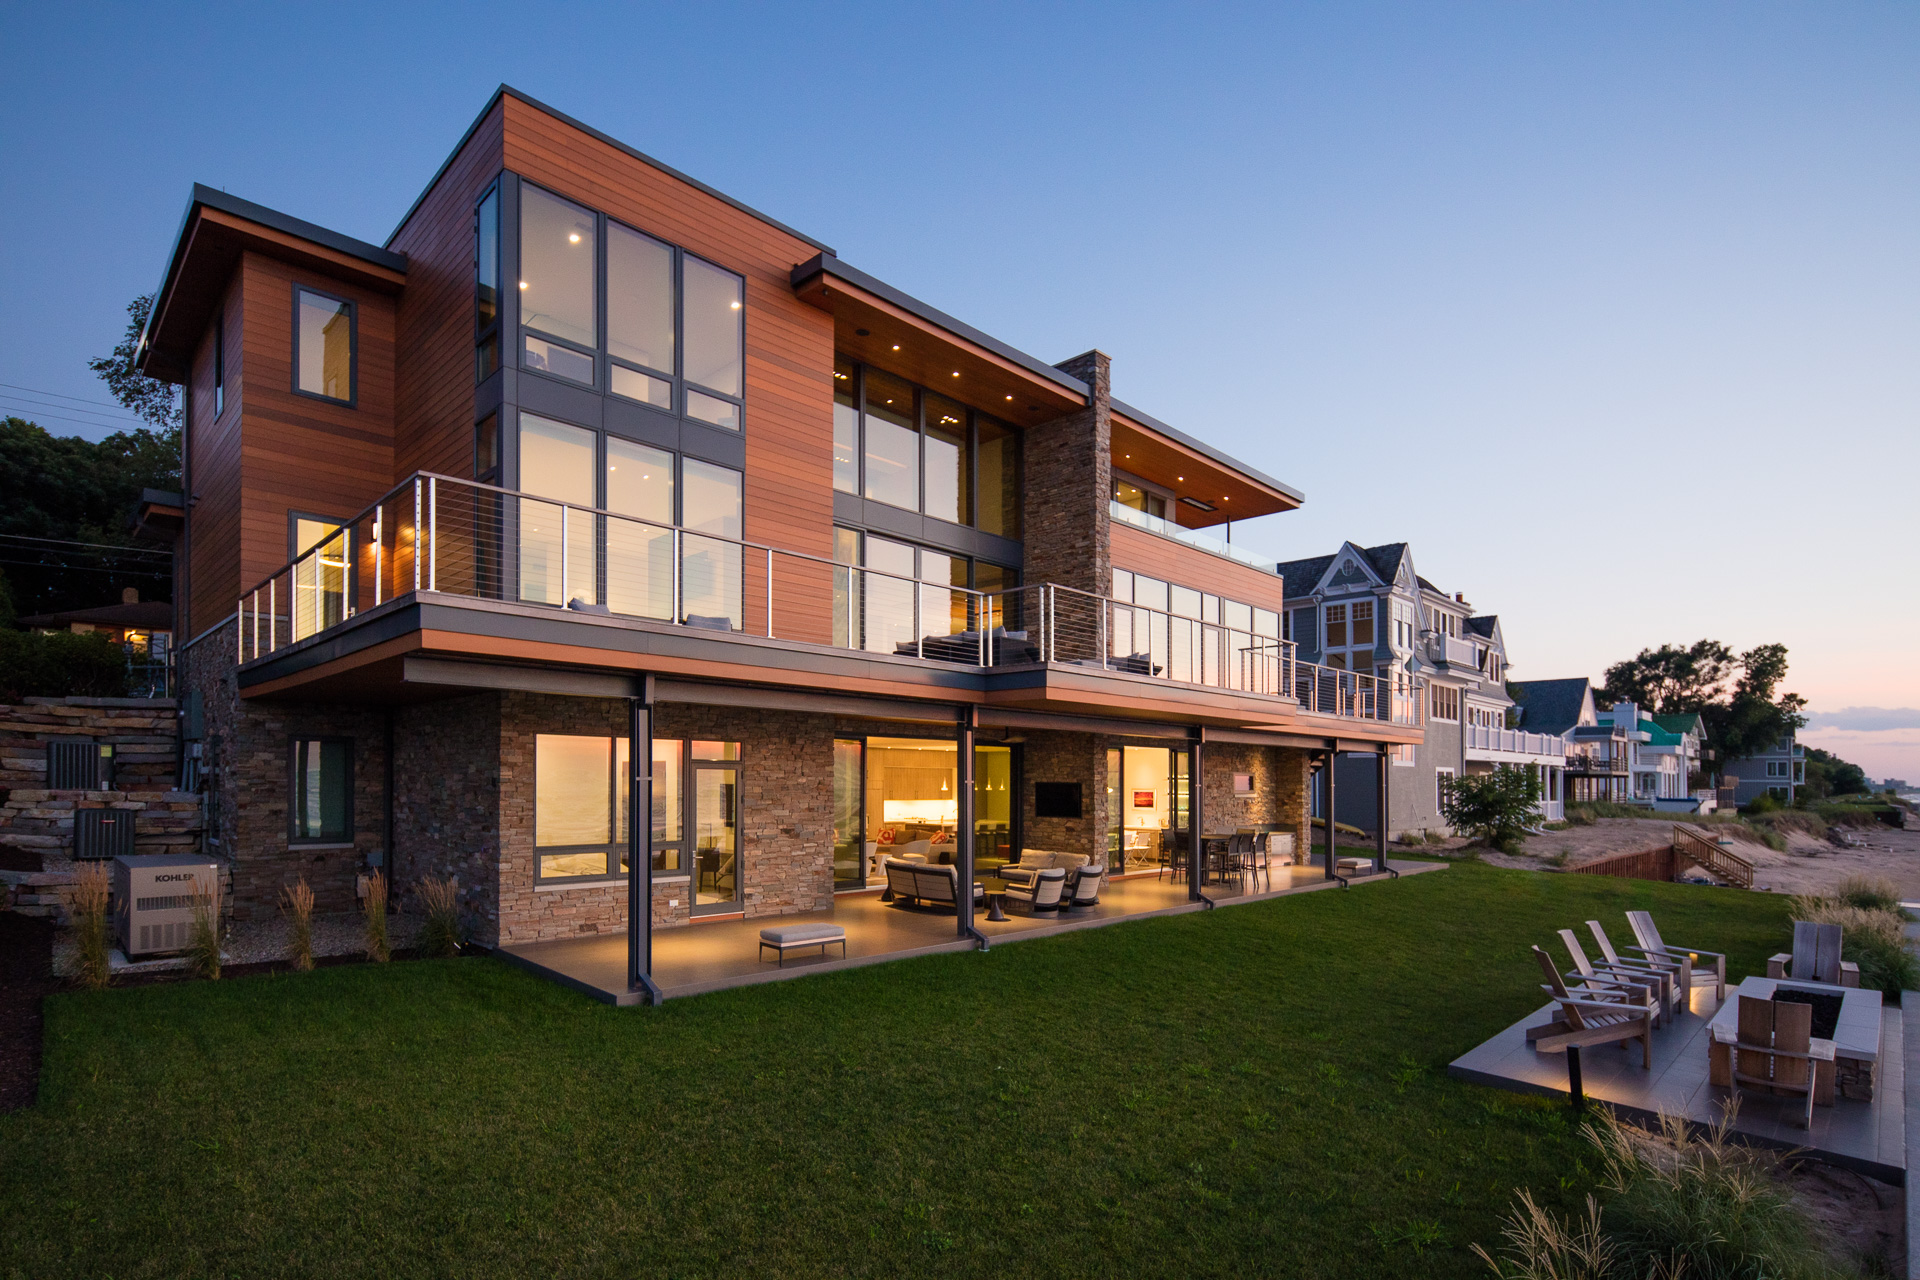 lake michigan home water view architecture beach modern home residential